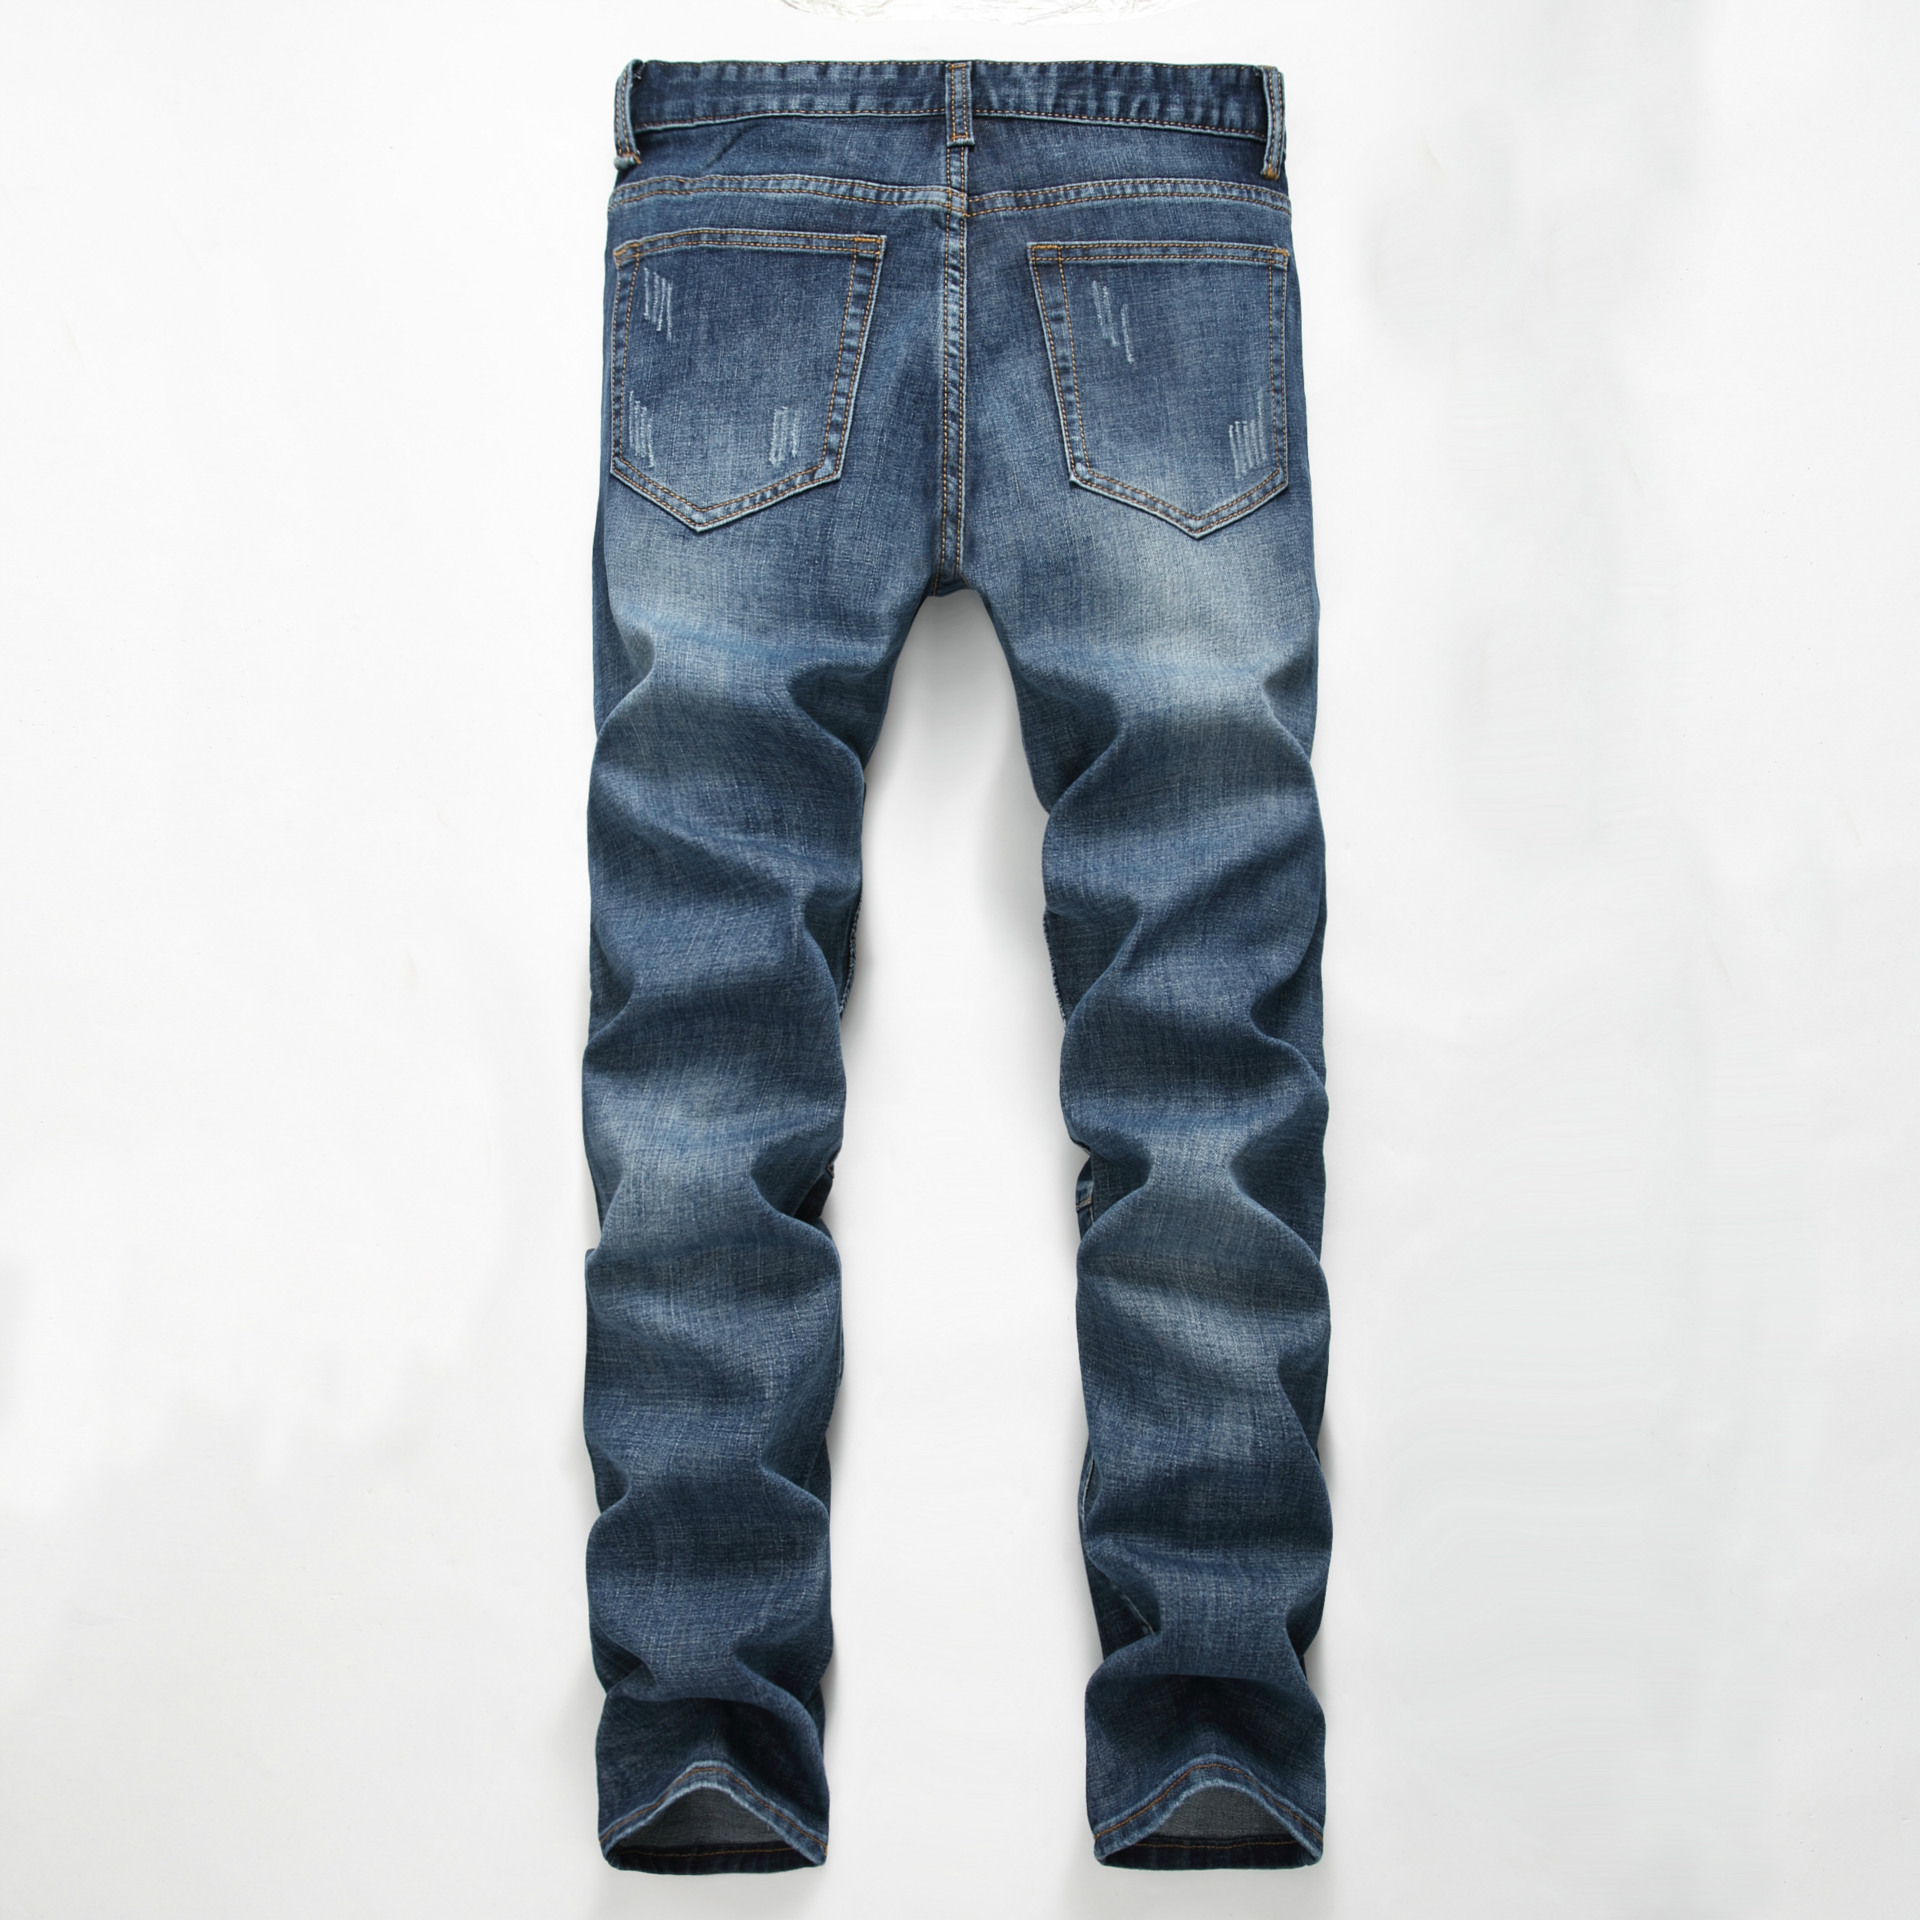 New TANGYAXUAN Brand Men   Jeans   Fashion Designer Distressed Ripped   Jeans   Men Straight Fit   Jeans   Homme,Cotton High Quality   Jeans